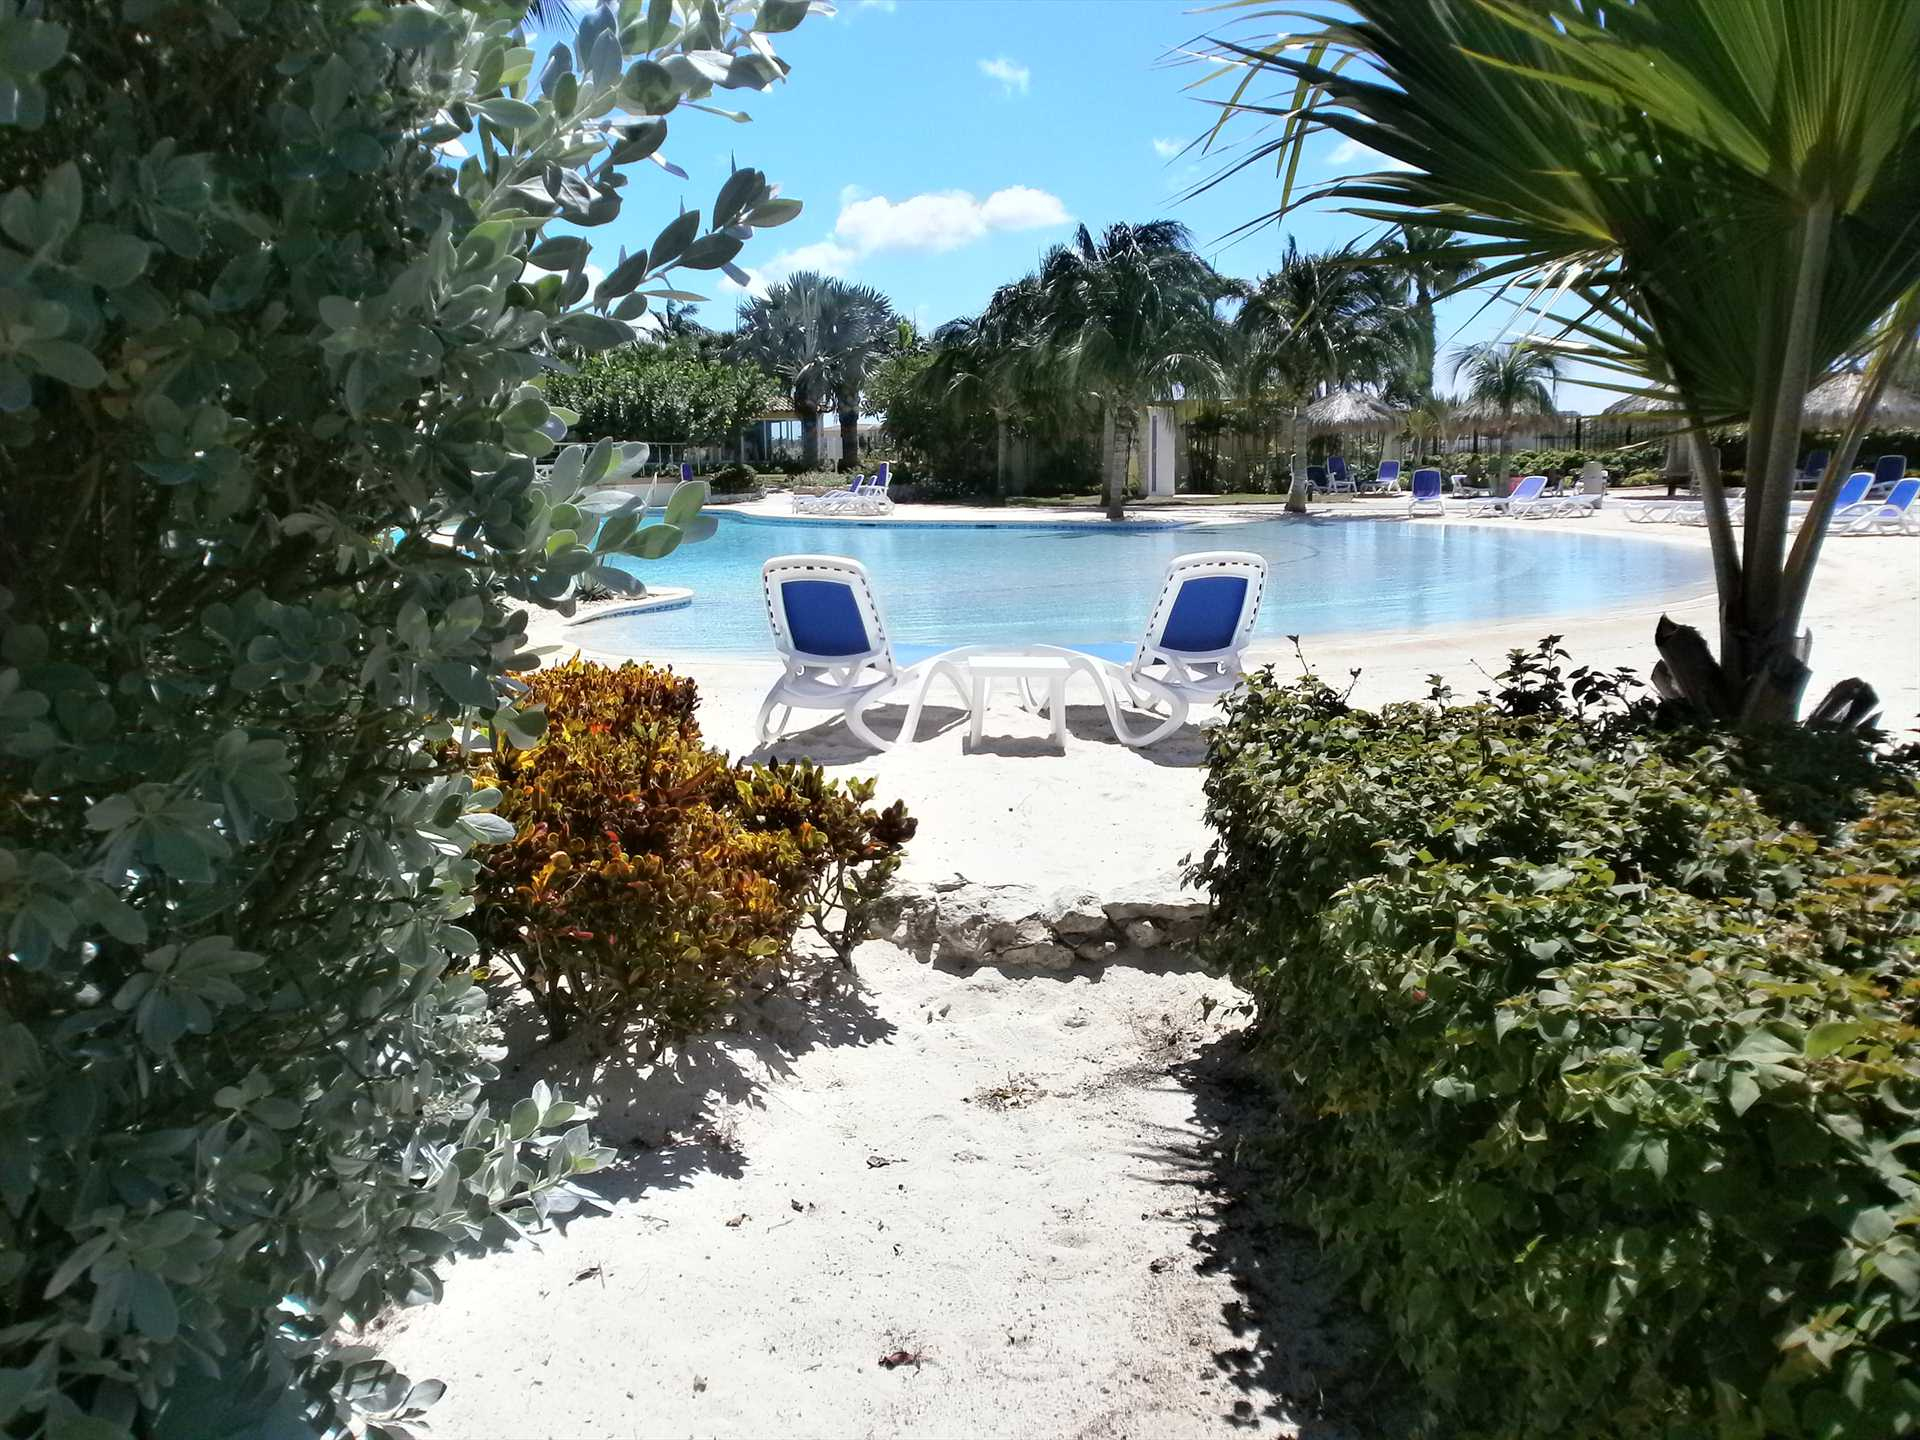 Private and easy access to the resort pool and beach gates!